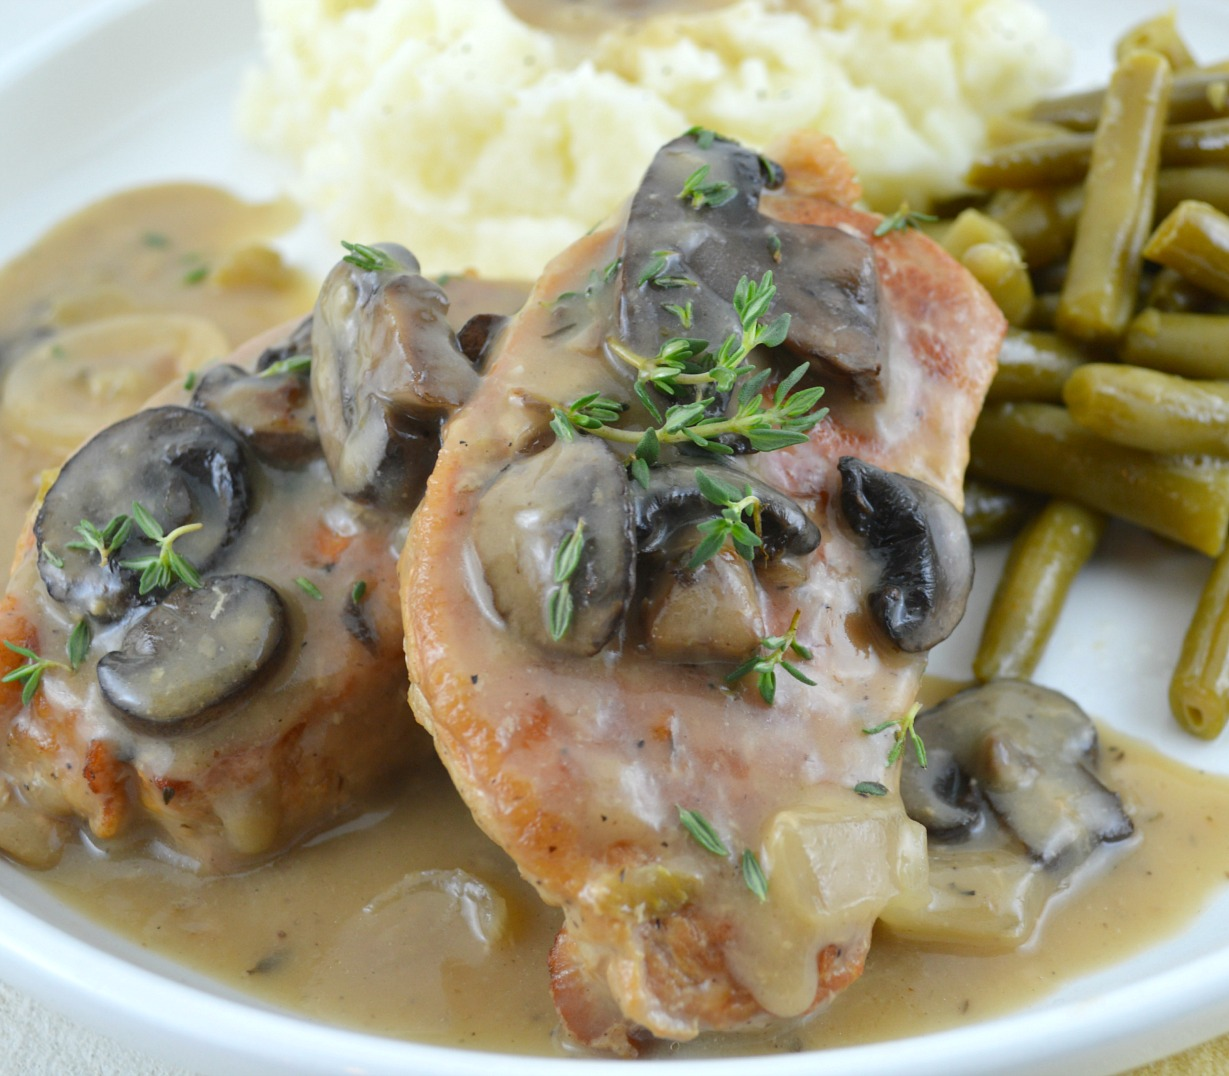 Crock Pot Pork Chops smothered with gravy, topped with mushroom, with green beans on the side